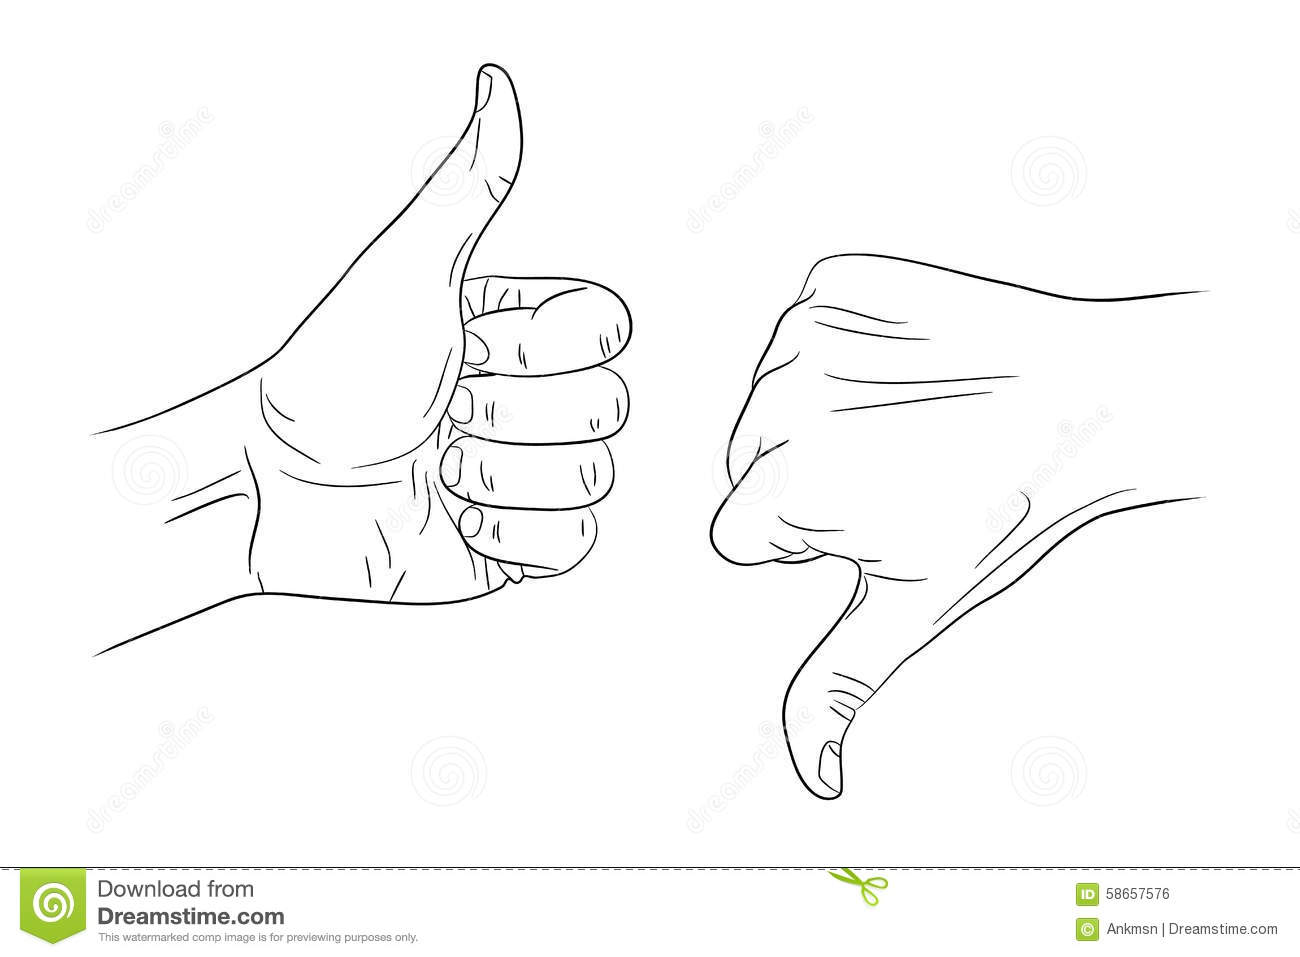 Thumbs down outline clipart png transparent stock Thumbs down outline clipart - ClipartFest png transparent stock